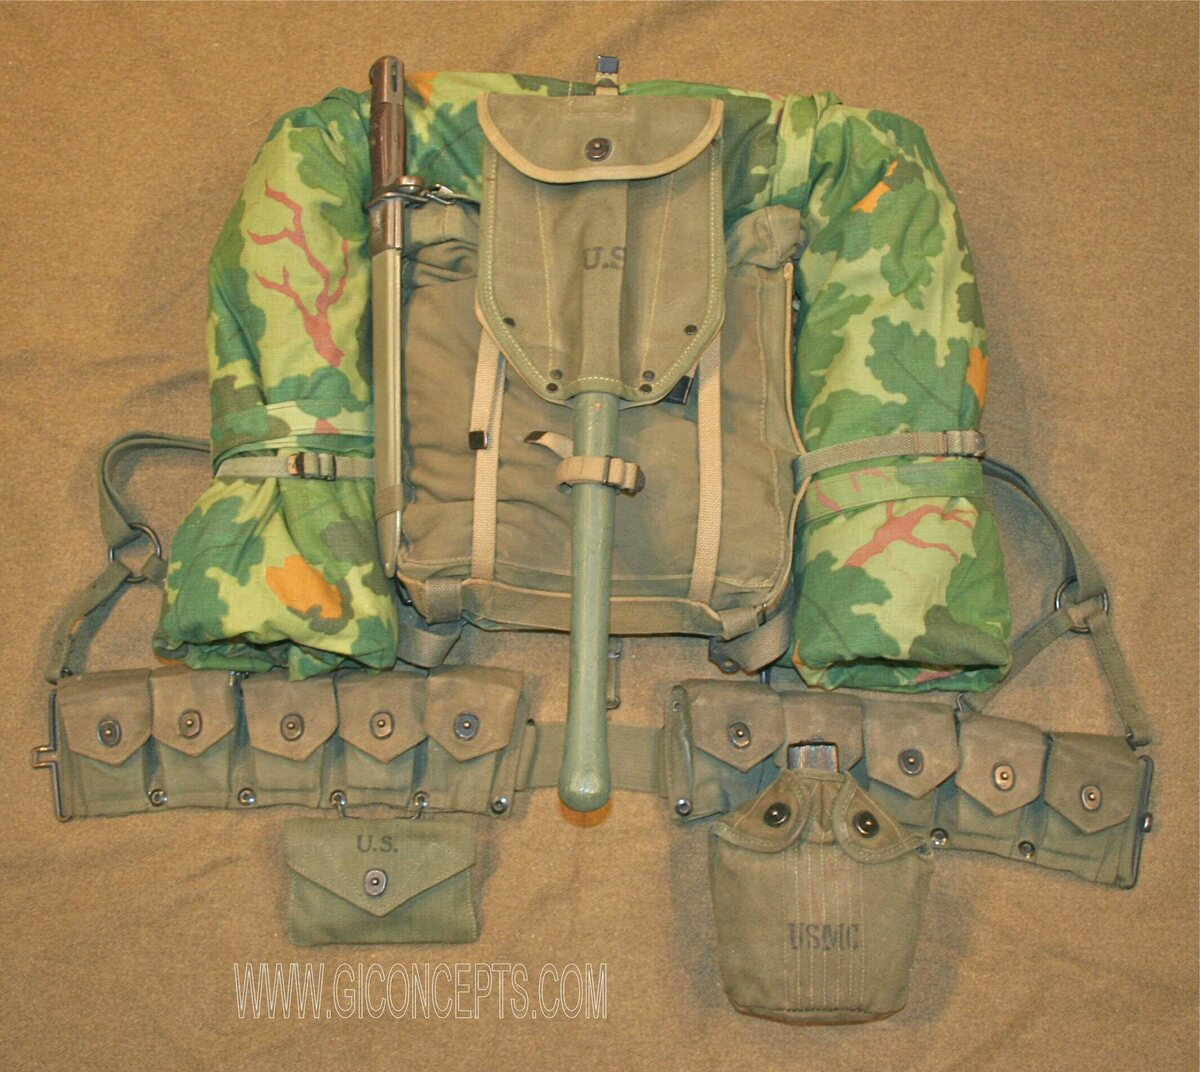 1961 US Marine Corps Field Gear